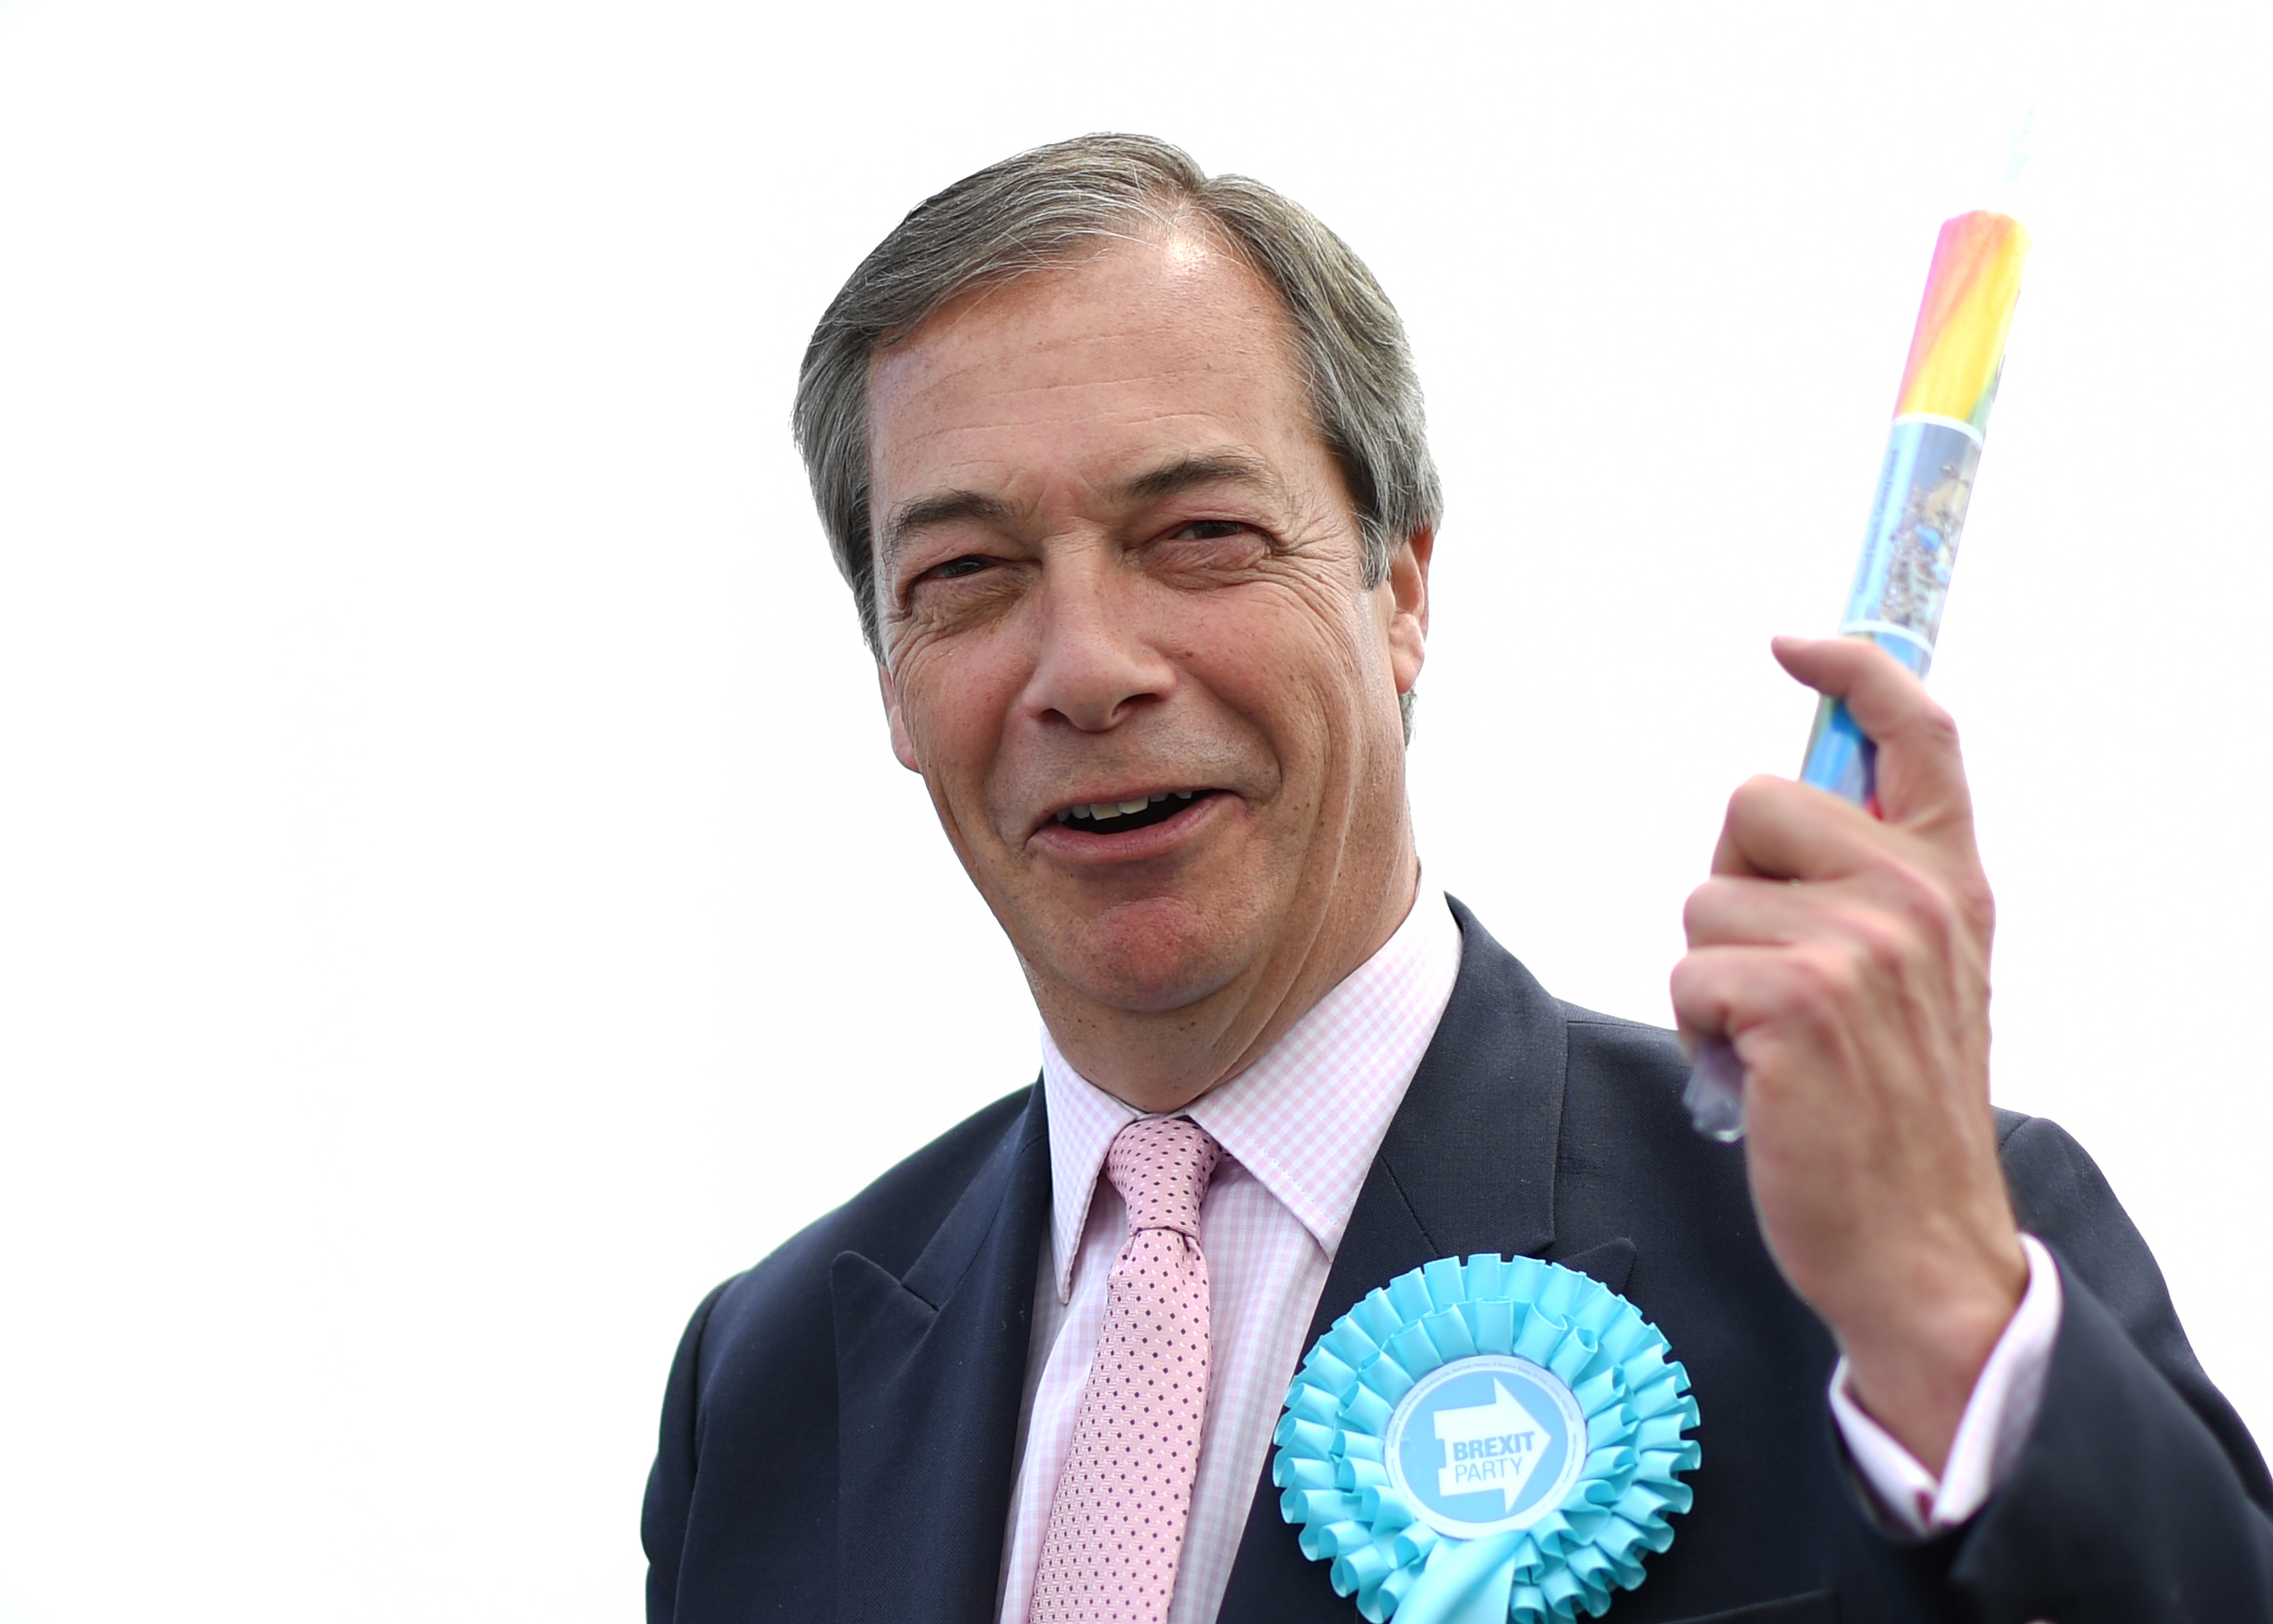 Man arrested in Newcastle after throwing milkshake at Nigel Farage